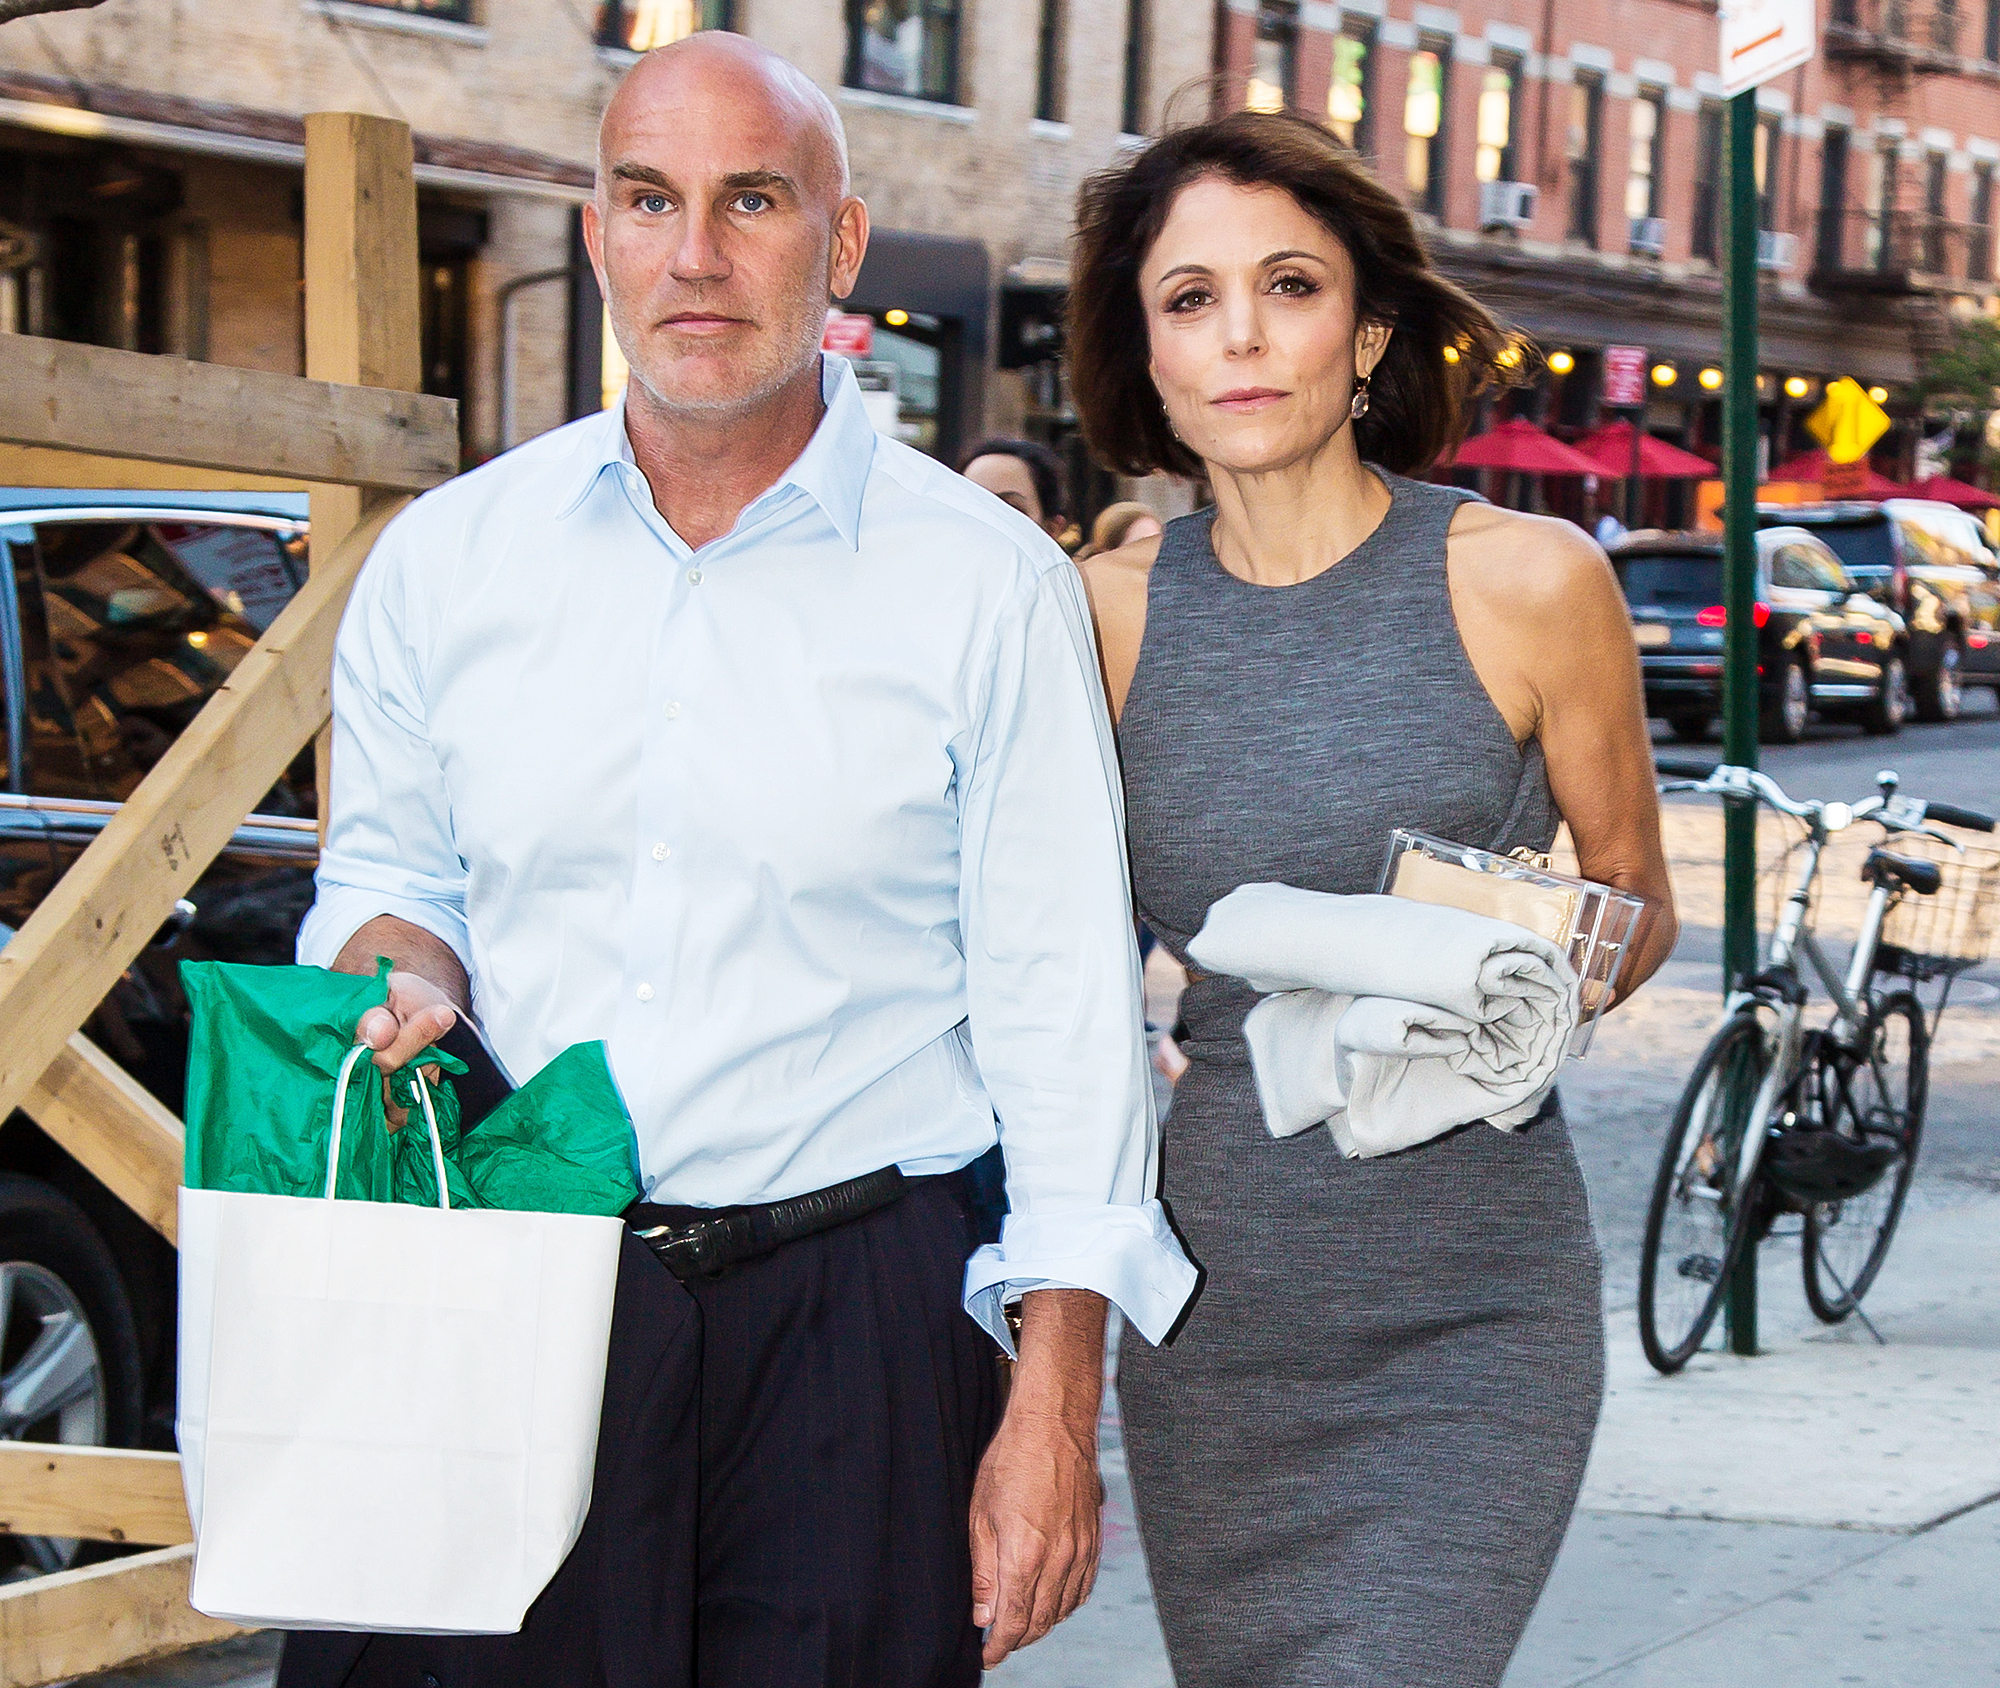 Bethenny Frankel Dennis Shields Real Housewives of New York Reunion